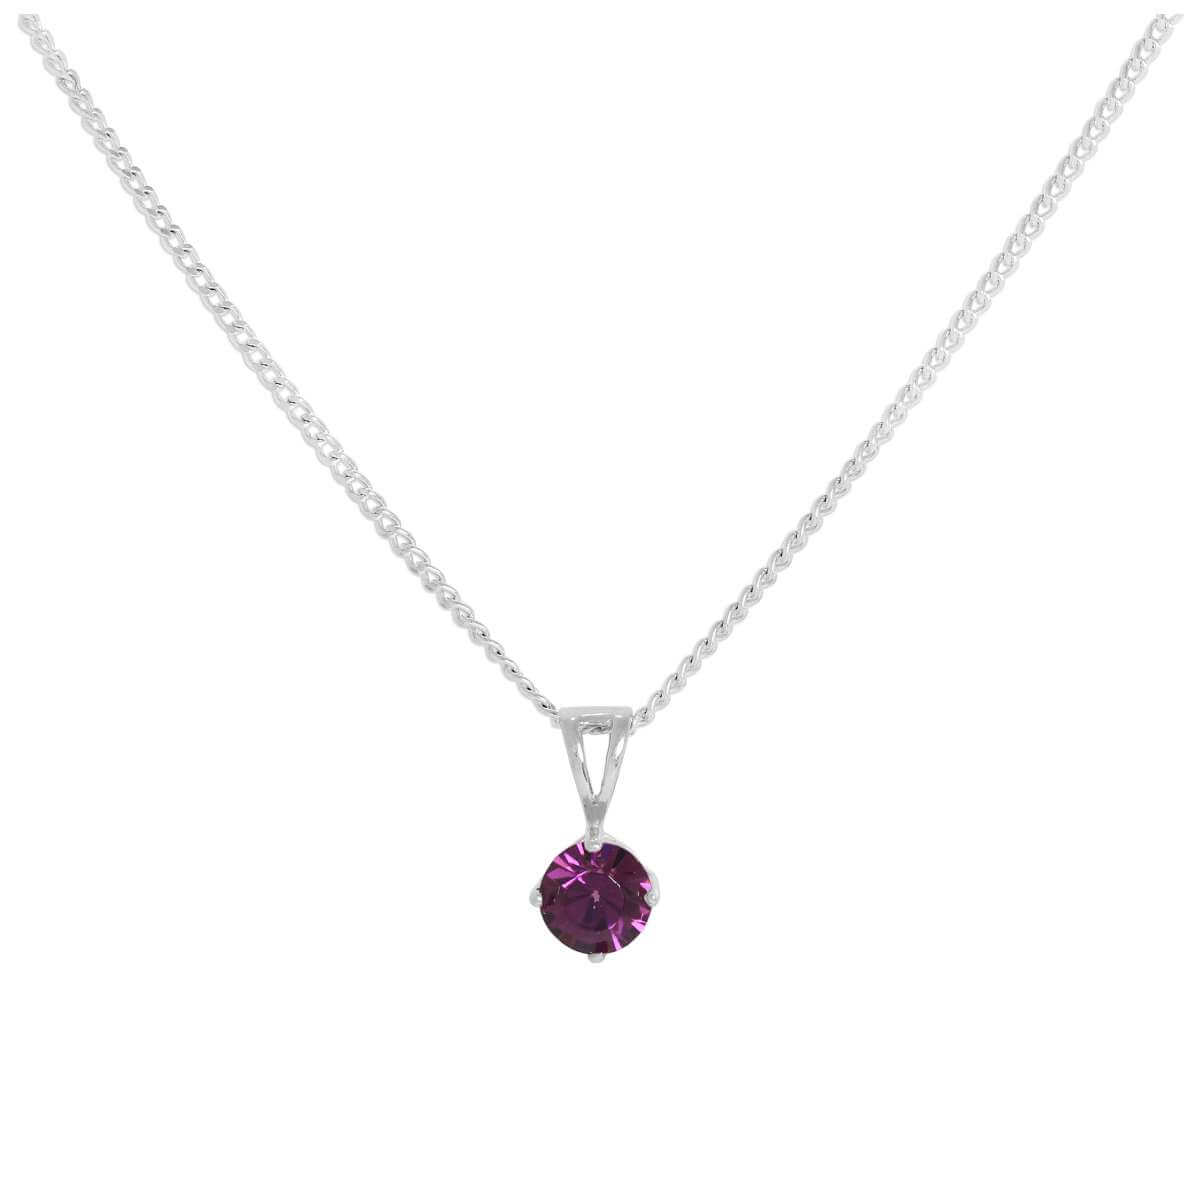 Sterling Silver & Amethyst Crystal Made with Swarovski Elements February Birthstone Pendant Necklace 16 - 24 Inches